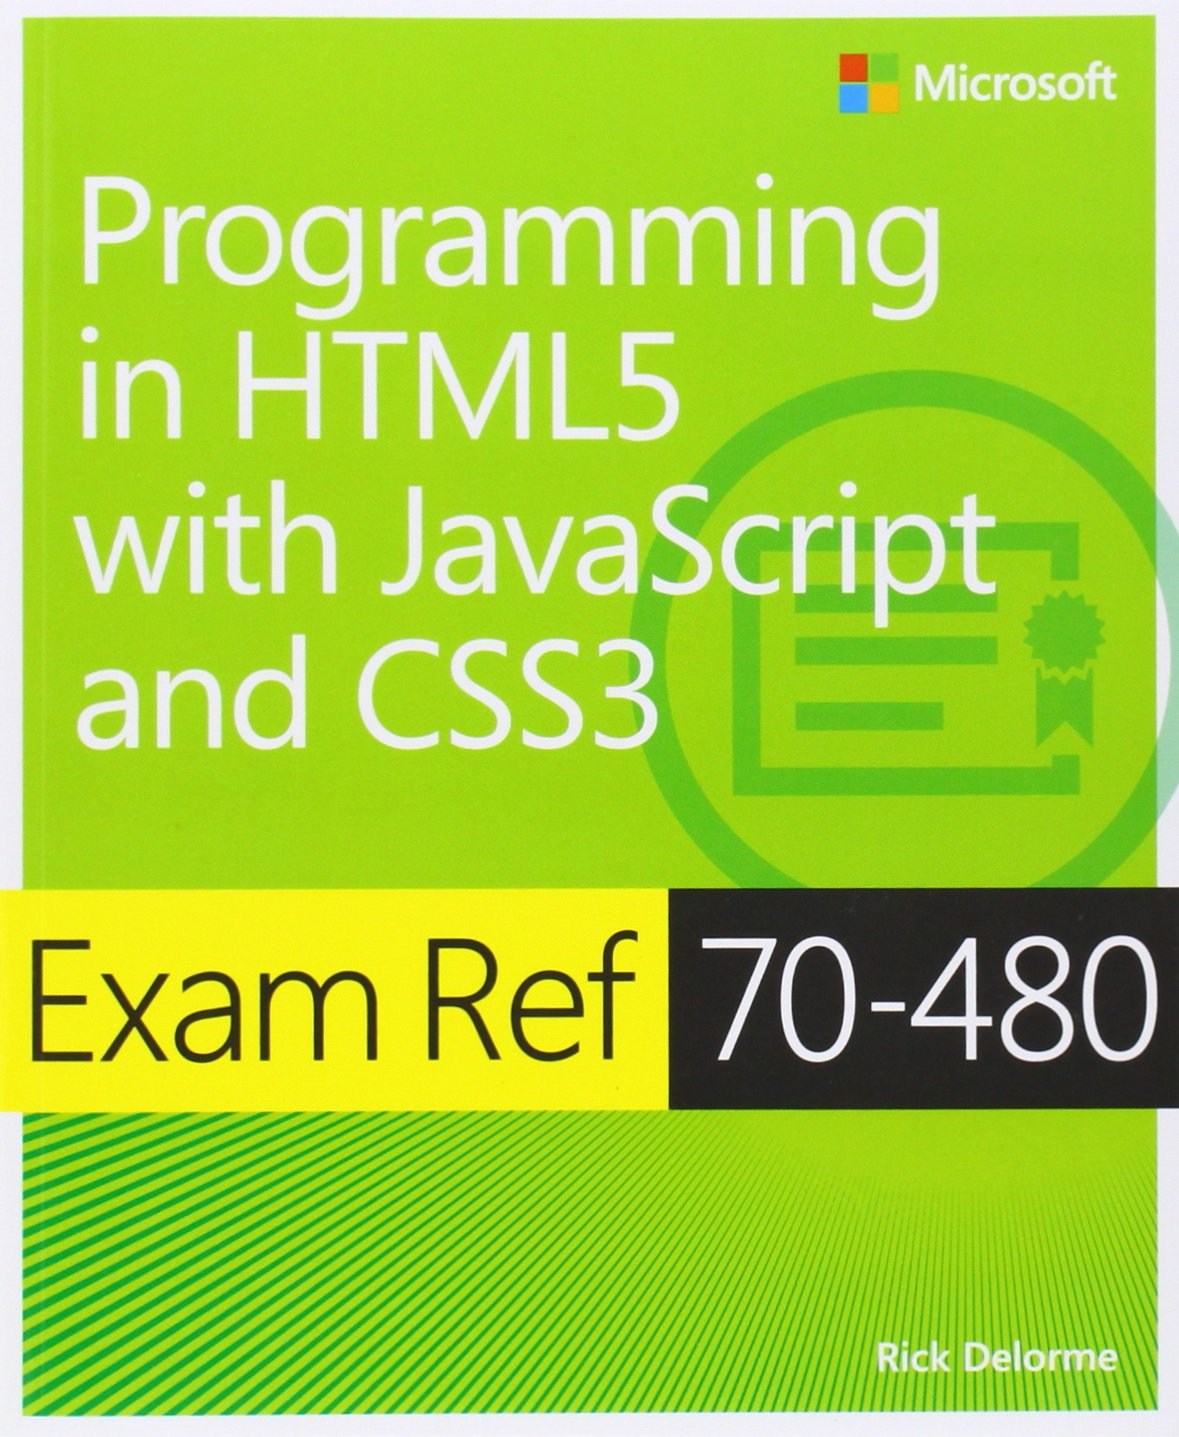 Exam Ref 70-480 Programming in HTML5 with JavaScript and CSS3